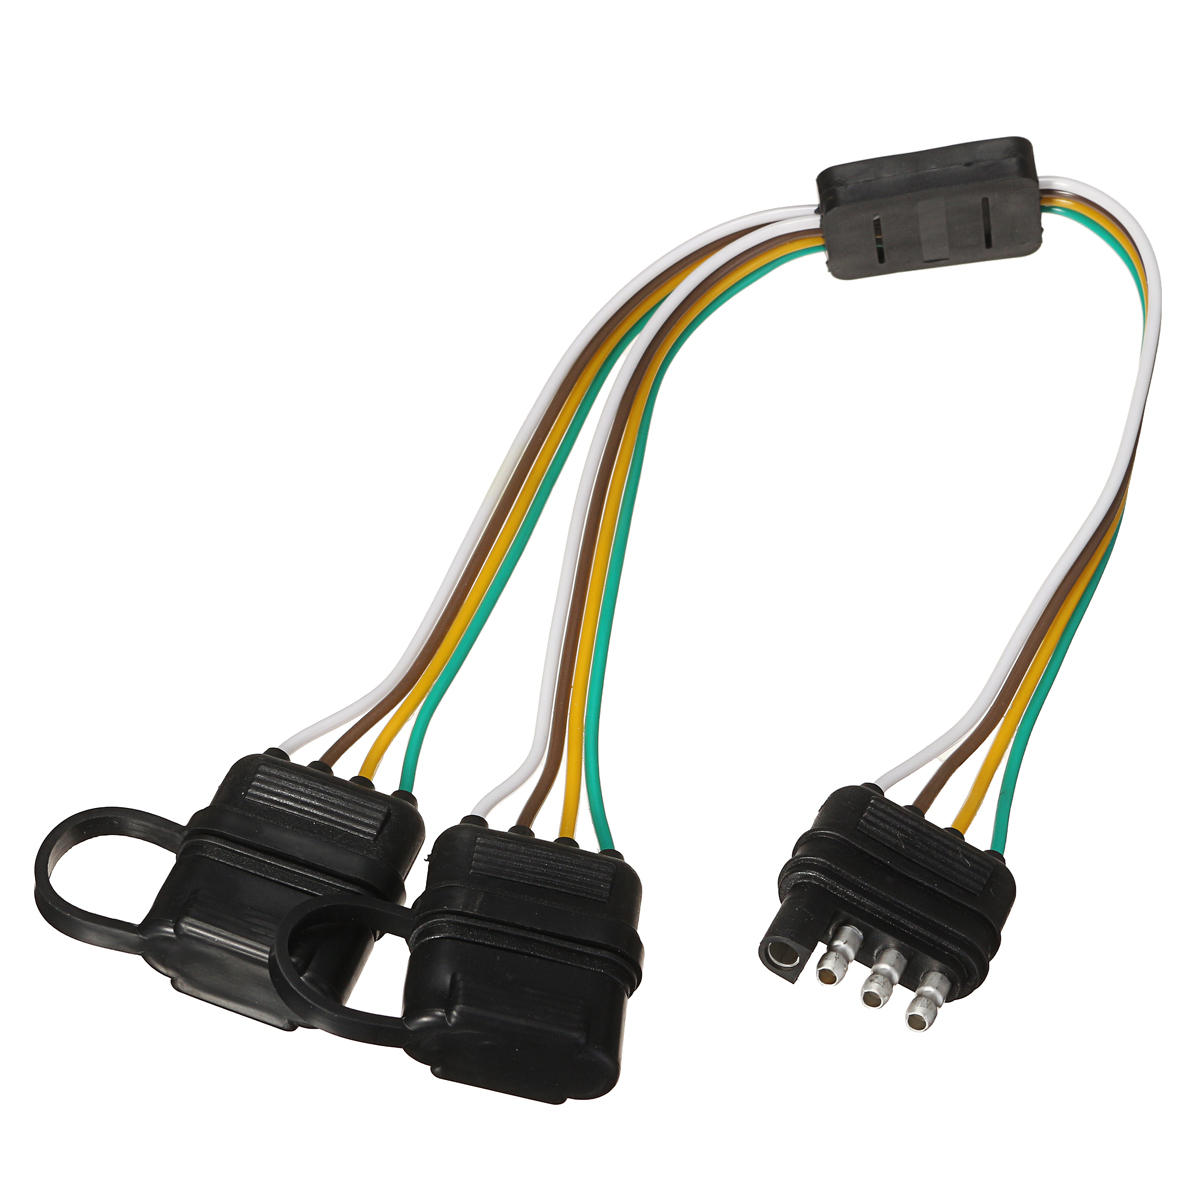 Trailer Splitter Harness Adapter 2 Way 4pin Y Split For Rear Camera Wire Tail Light Wiring On Led Tailgate